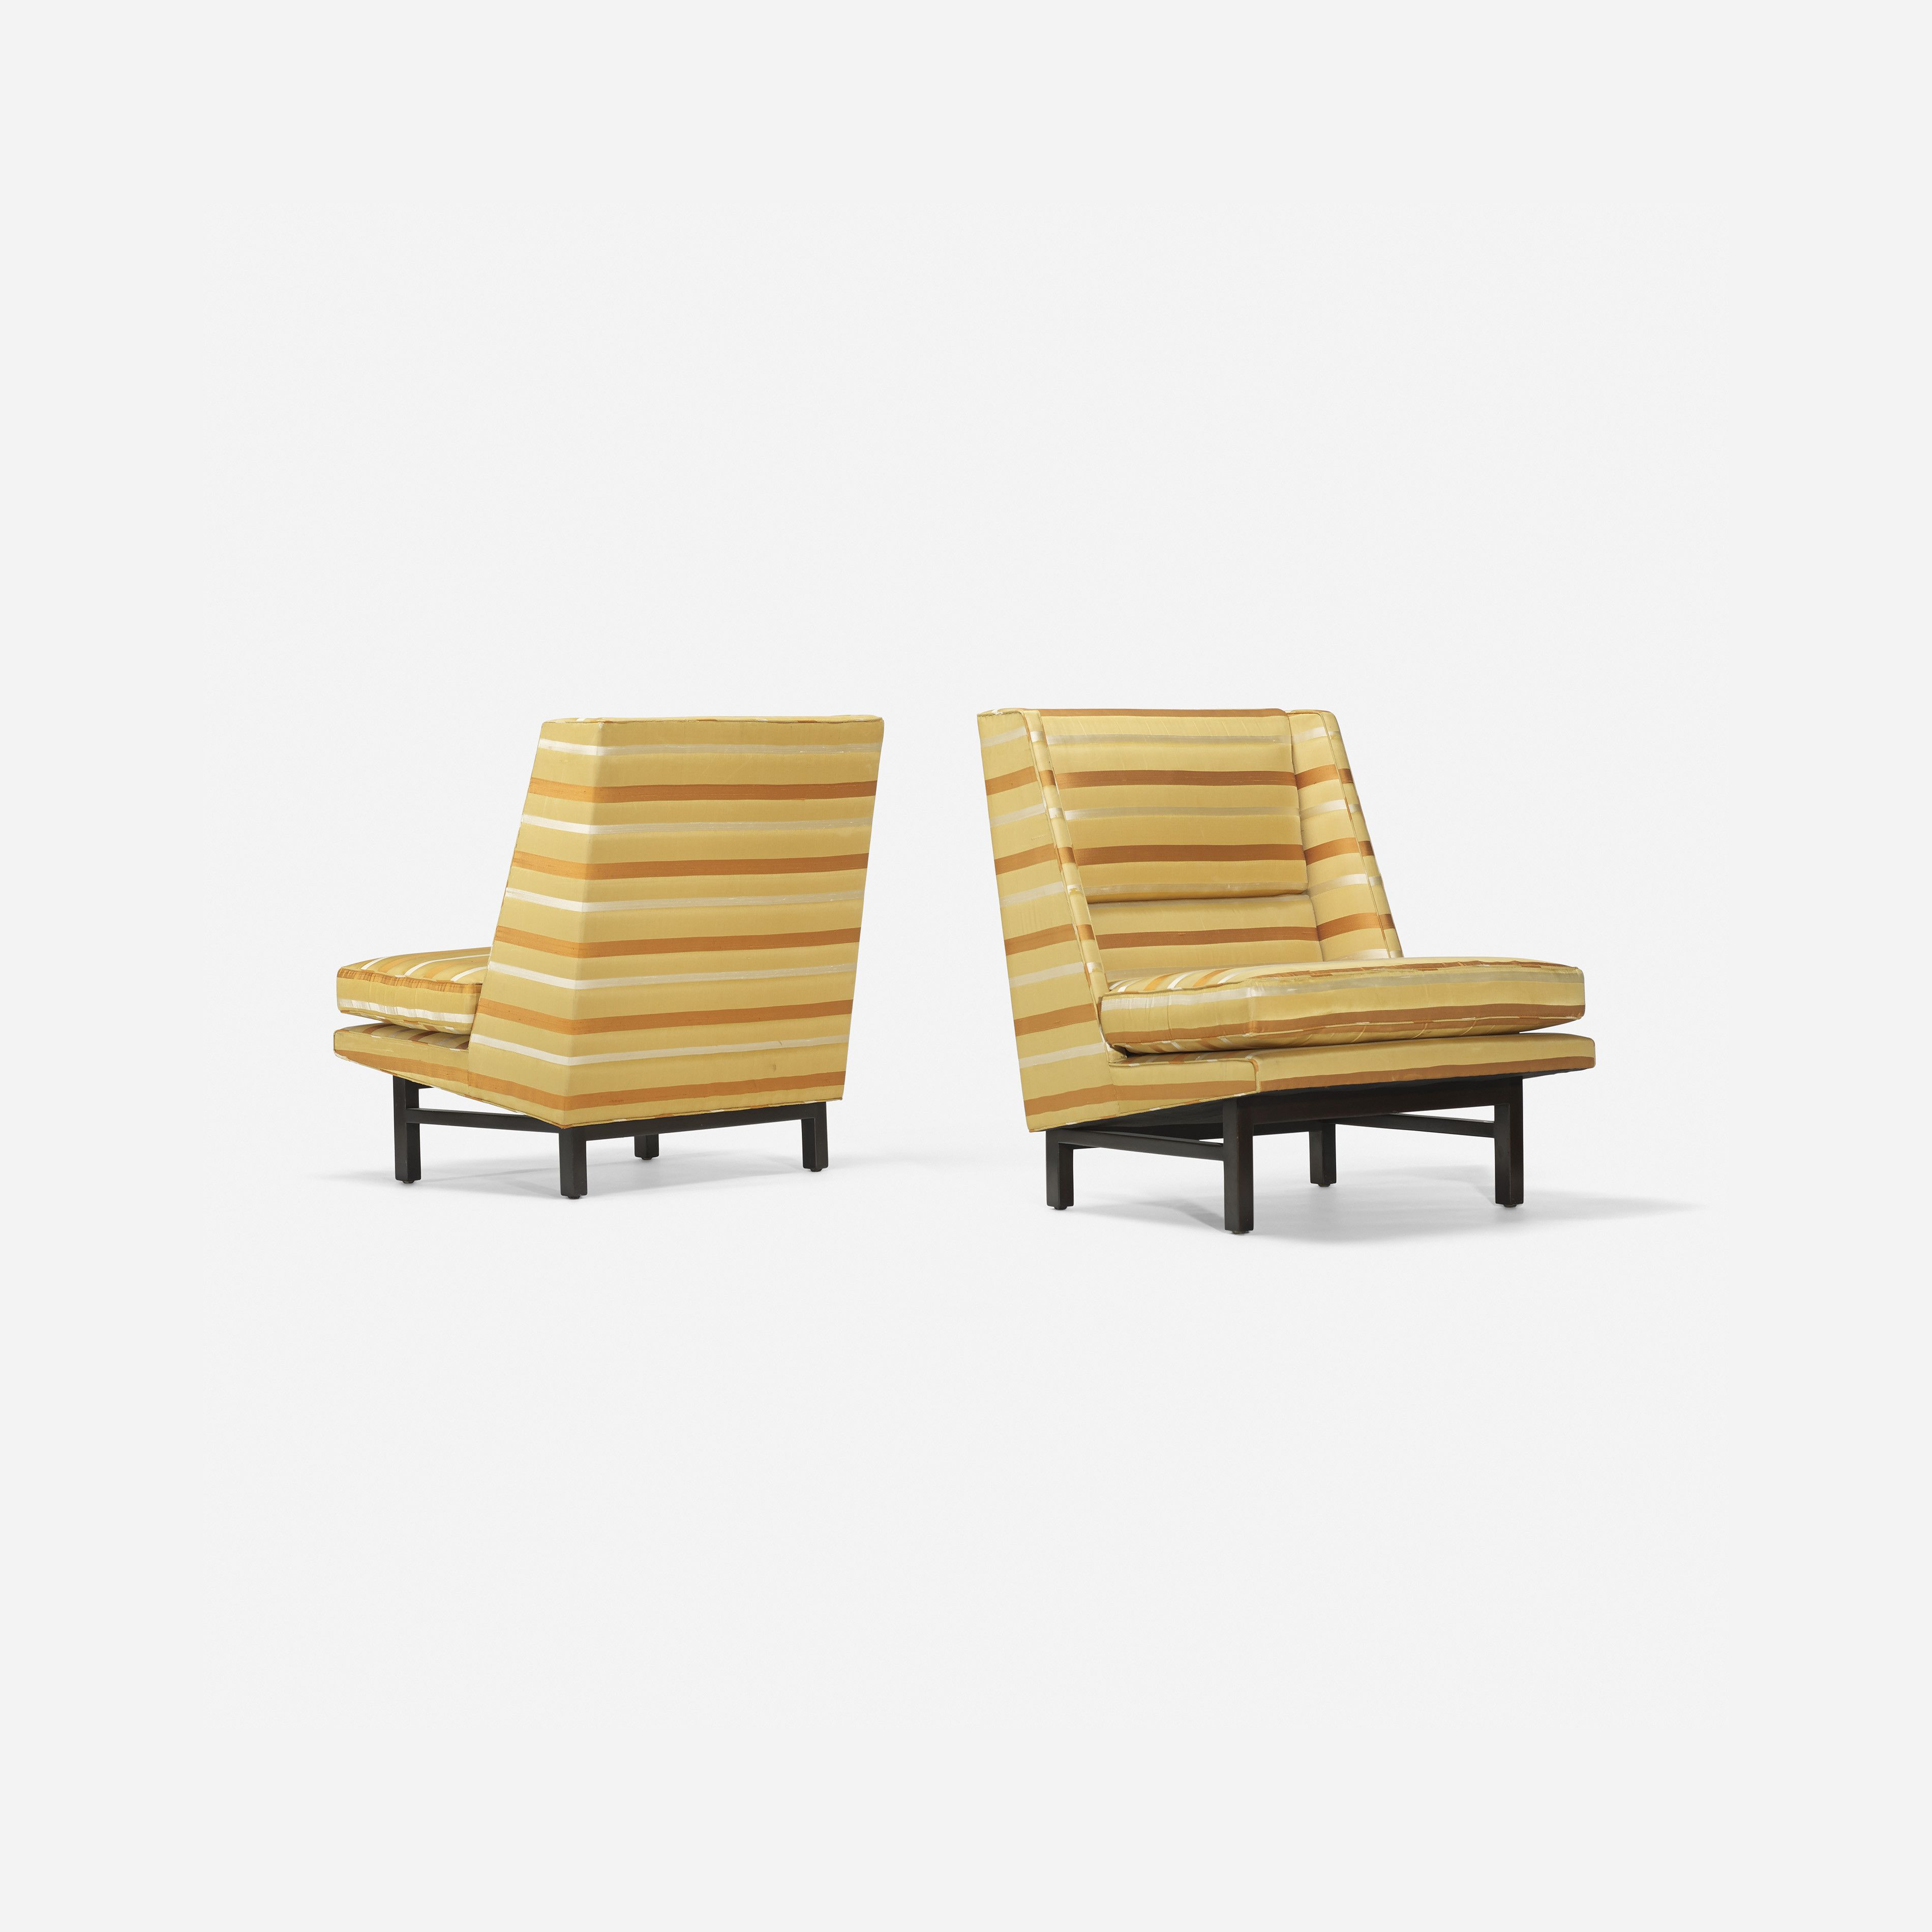 382: Edward Wormley / lounge chairs, pair < Design, 26 March 2015 < Auctions | Wright